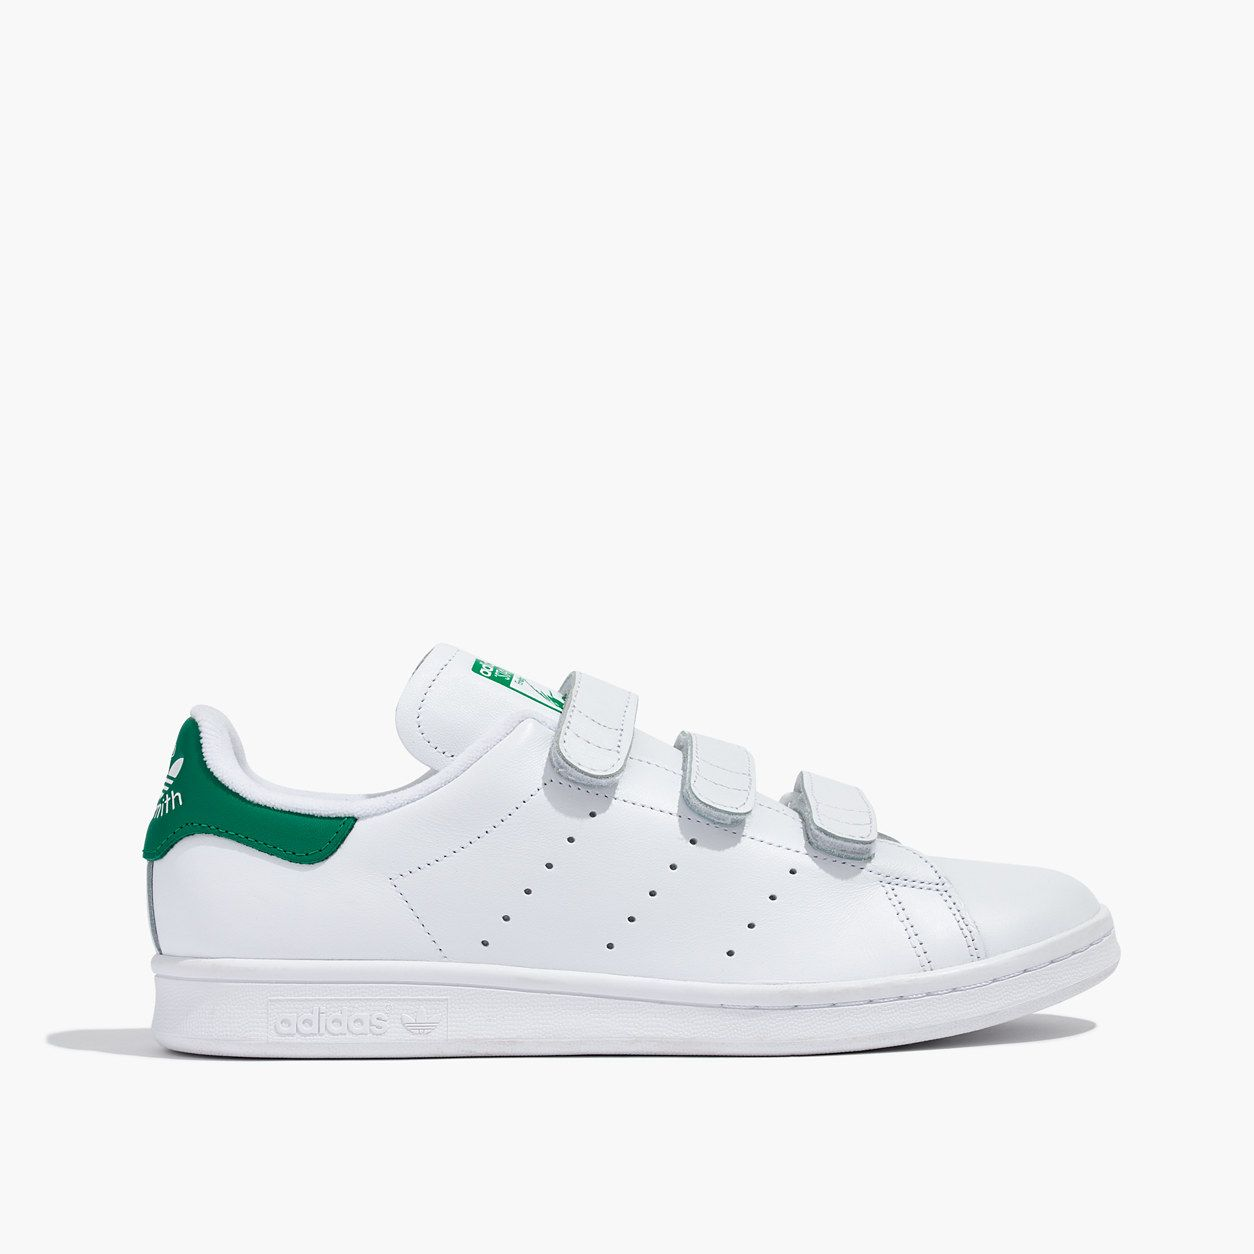 adidas stan smith wit zwarte stippen